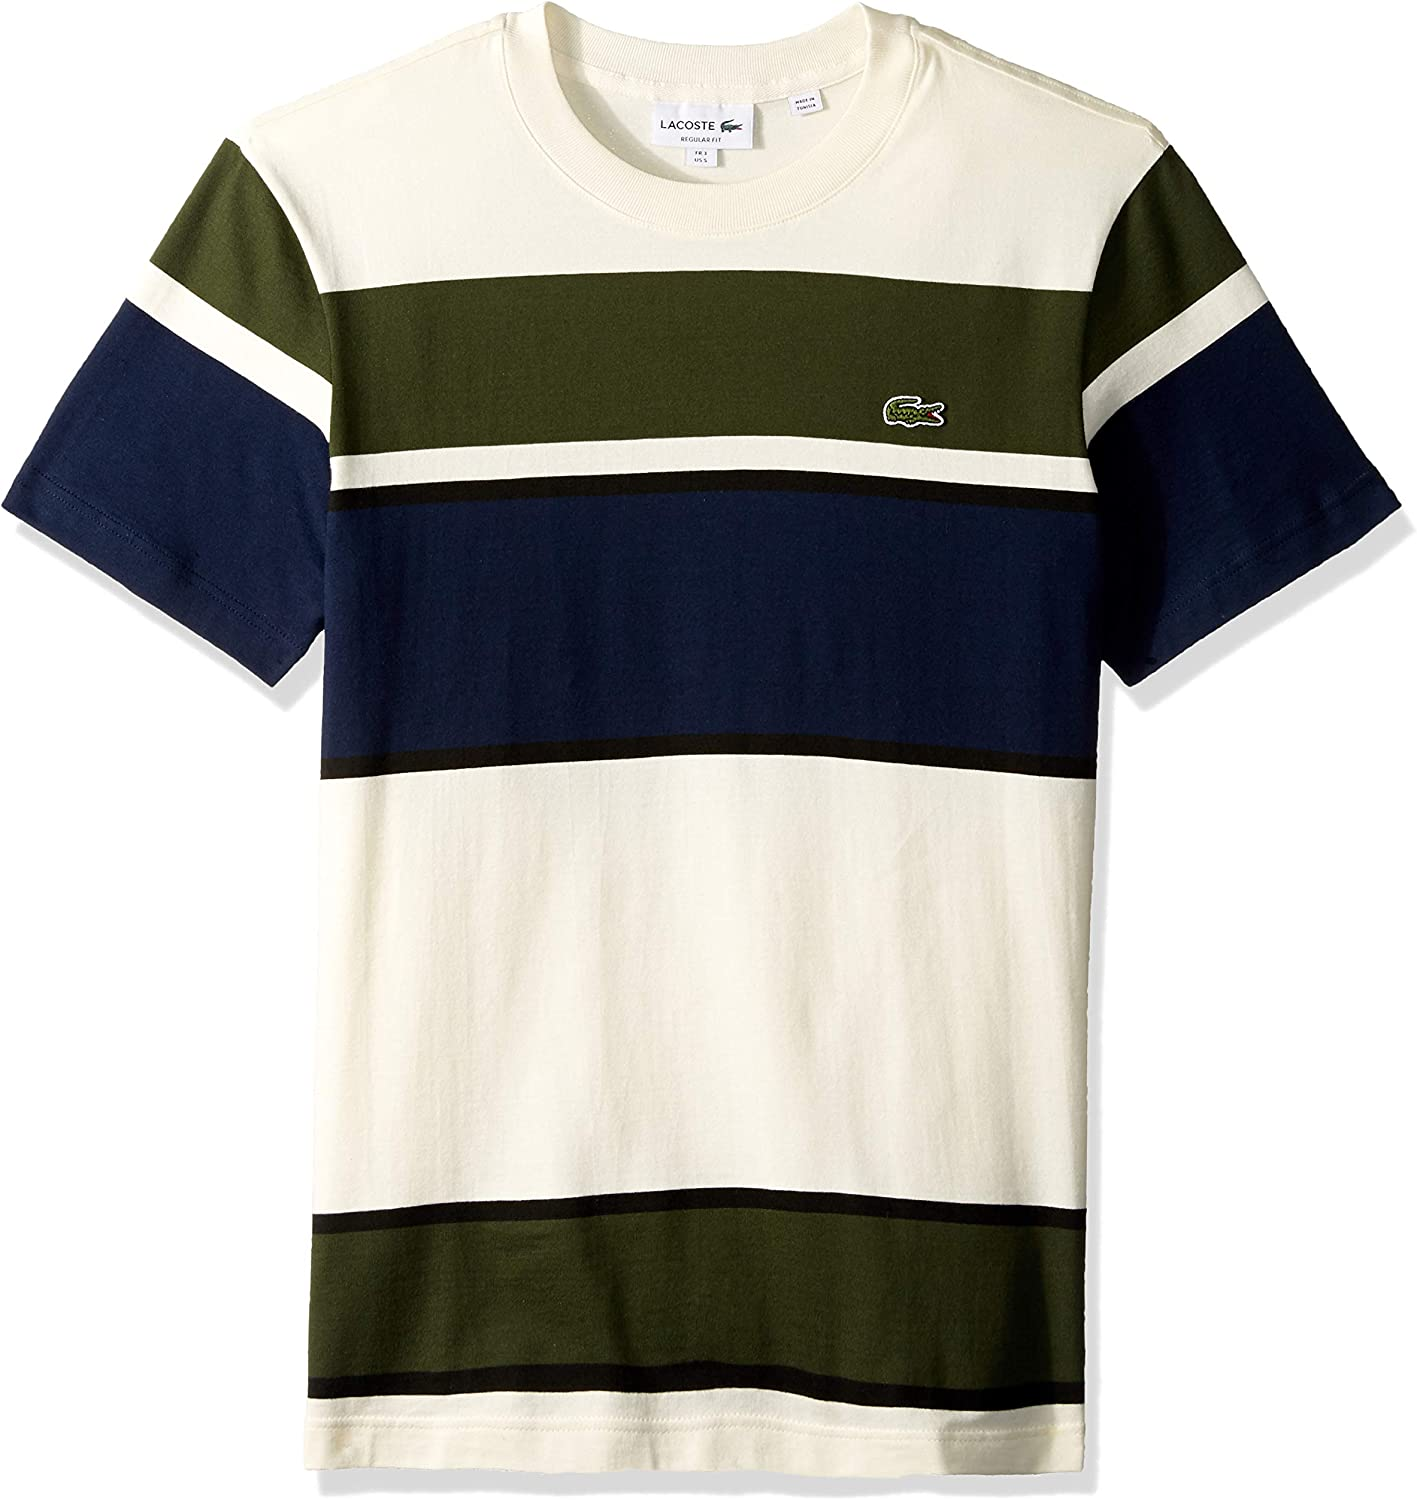 Lacoste Mens Short Sleeve Colorblock Jersey T-Shirt